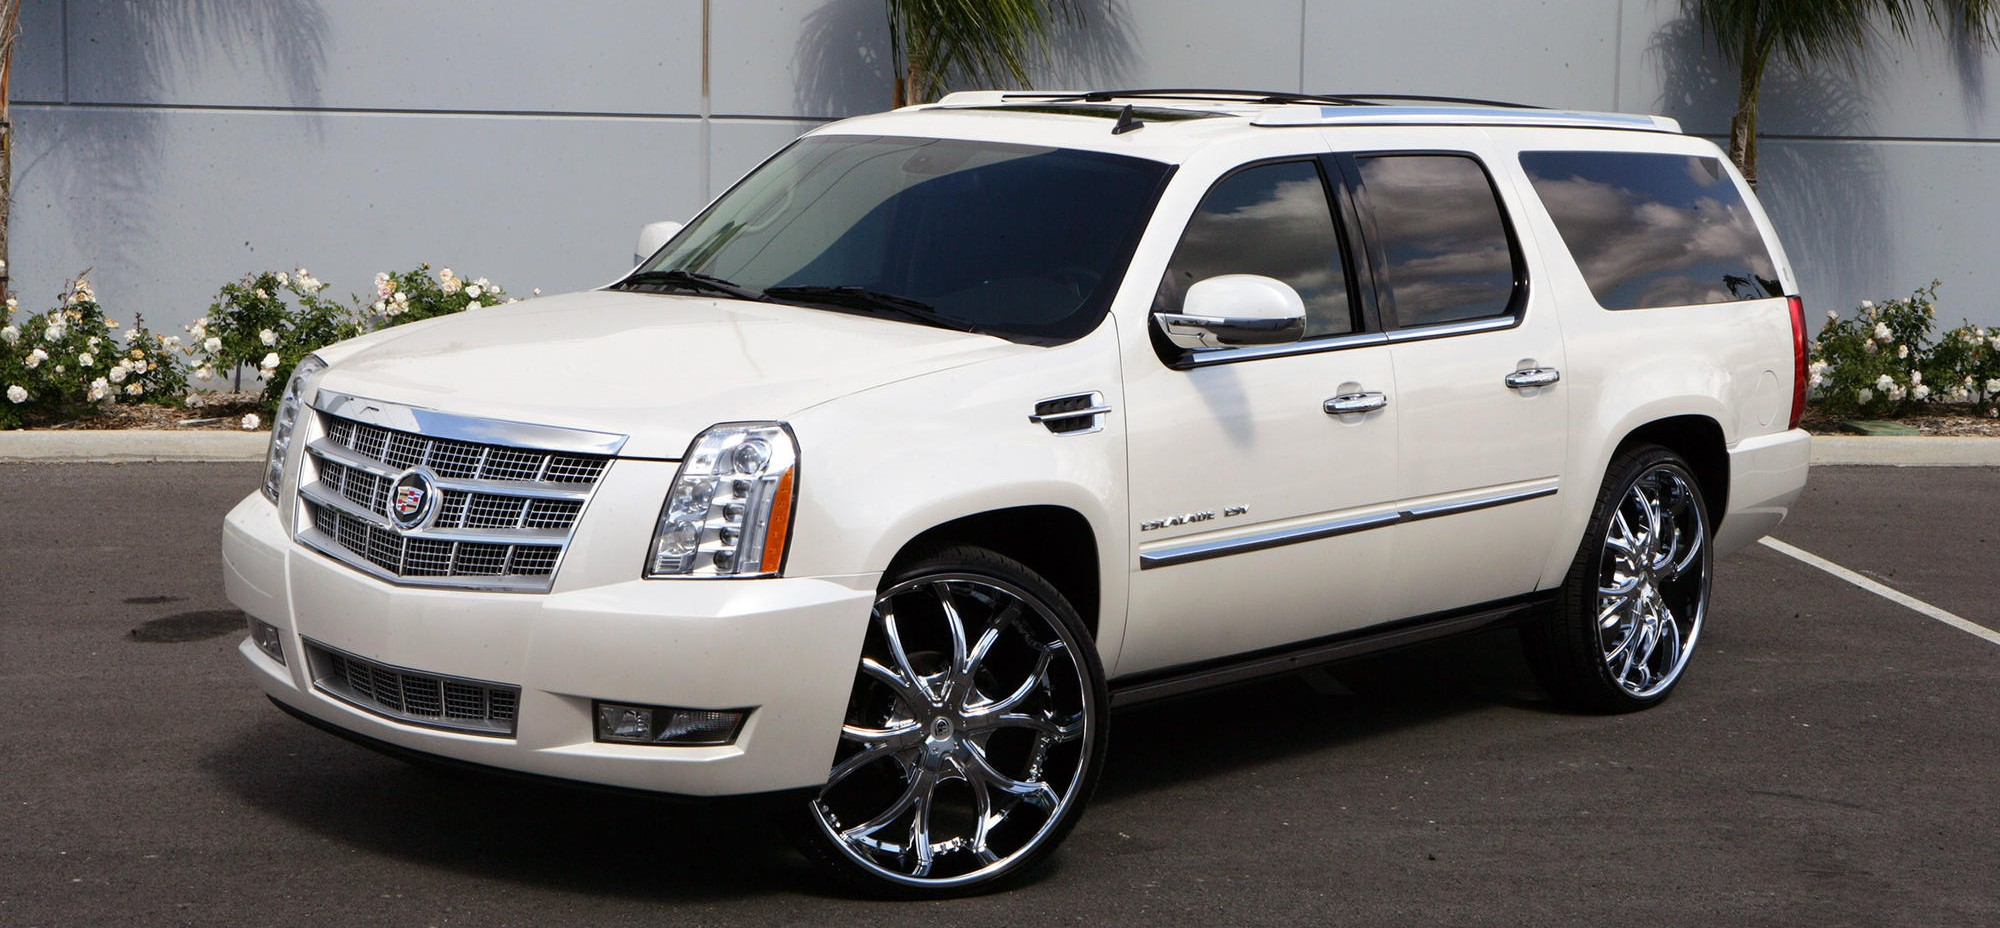 escalade suv images 2017 2018 2019 ford price release date reviews. Black Bedroom Furniture Sets. Home Design Ideas